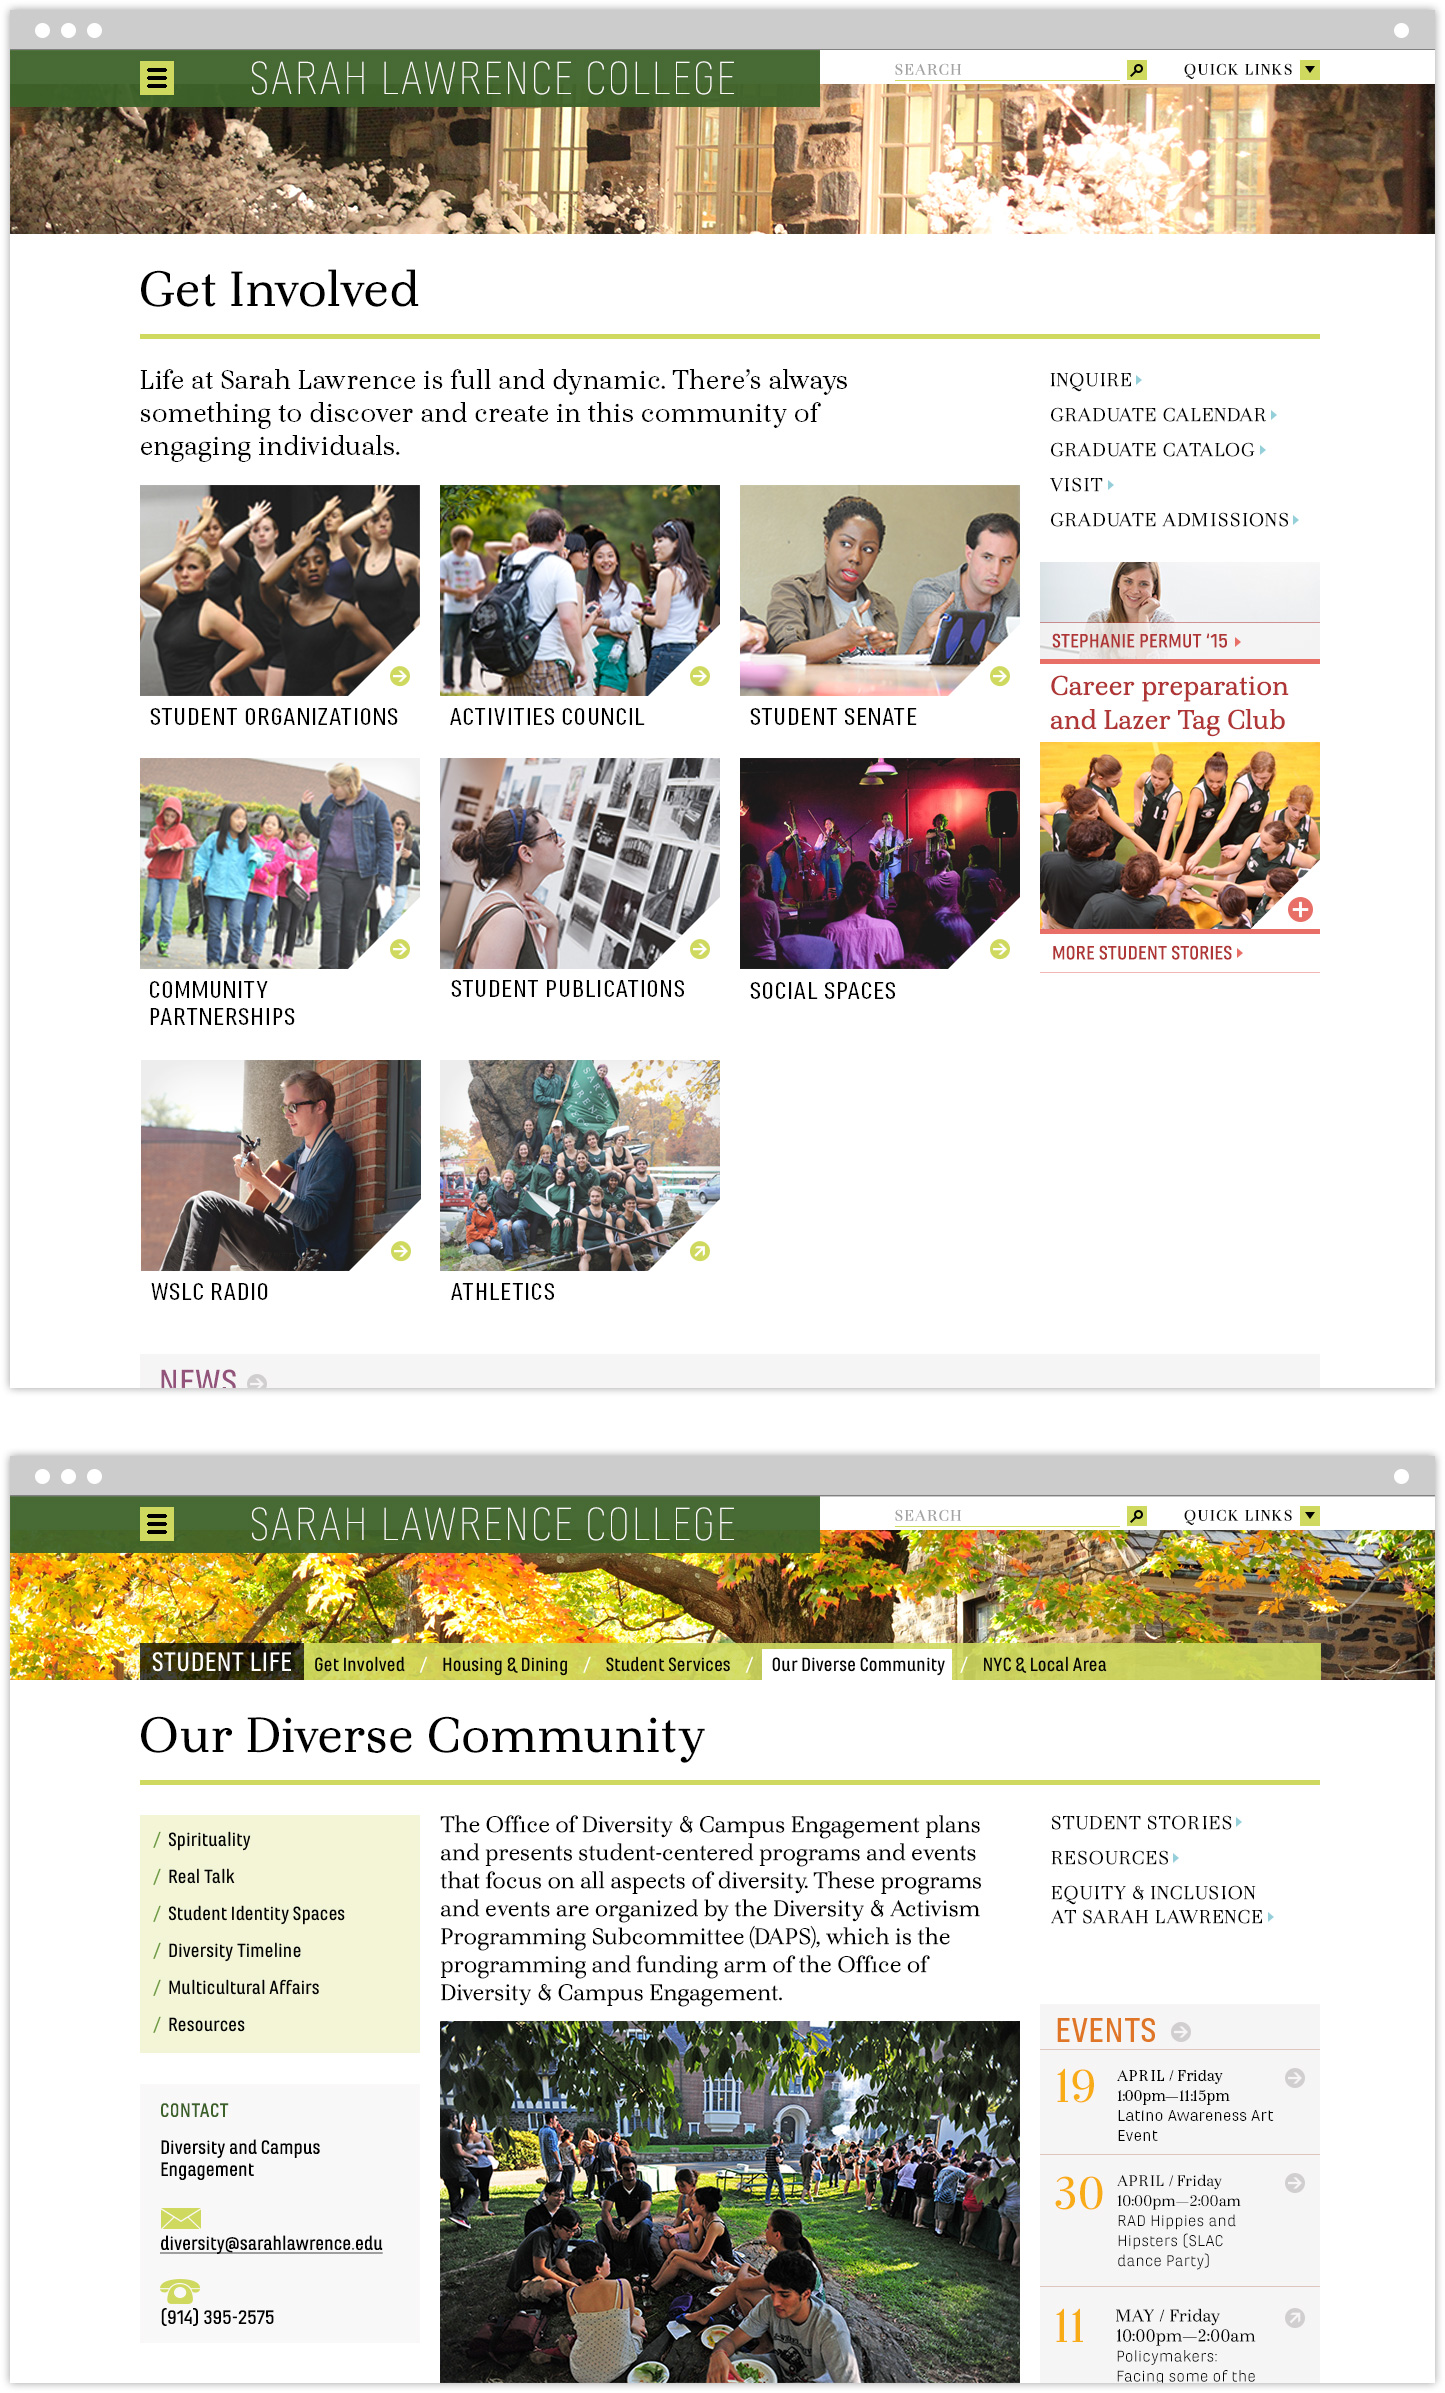 Get Involved and Our Diverse Community interior pages